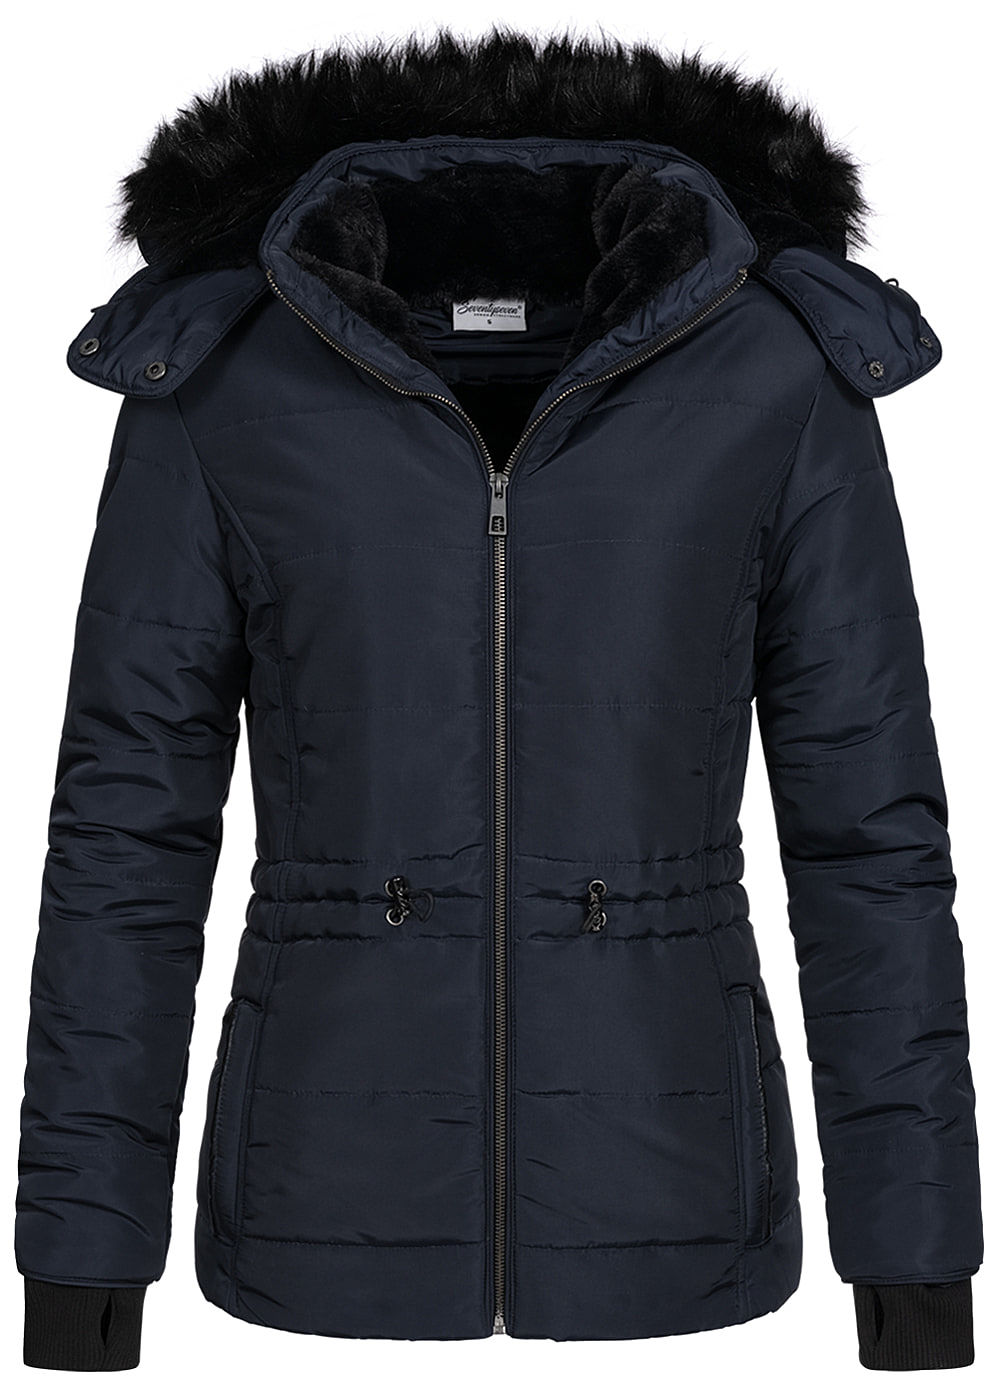 Seventyseven Lifestyle Damen Winter Steppjacke abnehmbare Kapuze 2-Pockets navy blau - Art.-Nr.: 20108149